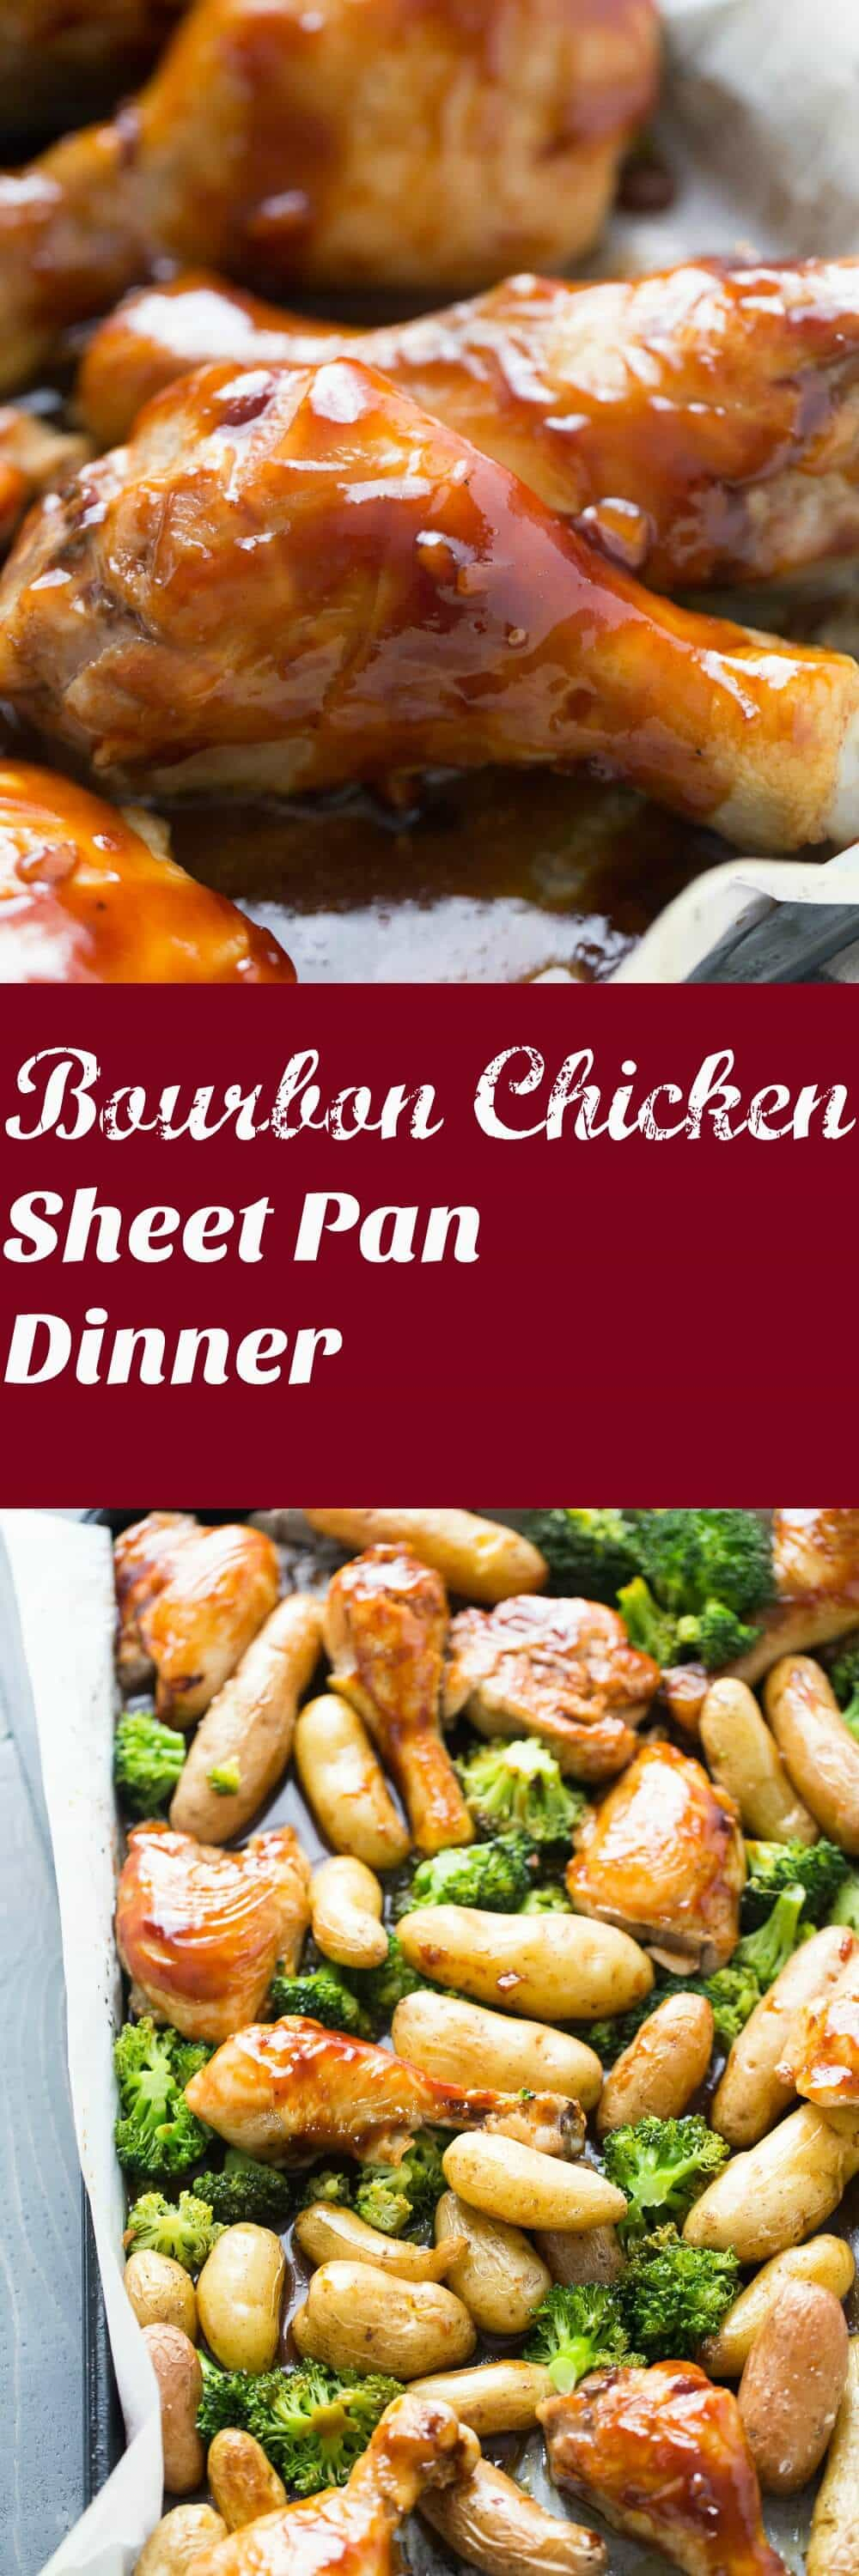 Sheet pan dinners are family friendly and easy to make! This bourbon chicken recipe is baked along with potatoes and broccoli then covered in a perfectly seasoned bourbon sauce! Get the napkins ready! lemonsforlulu.com